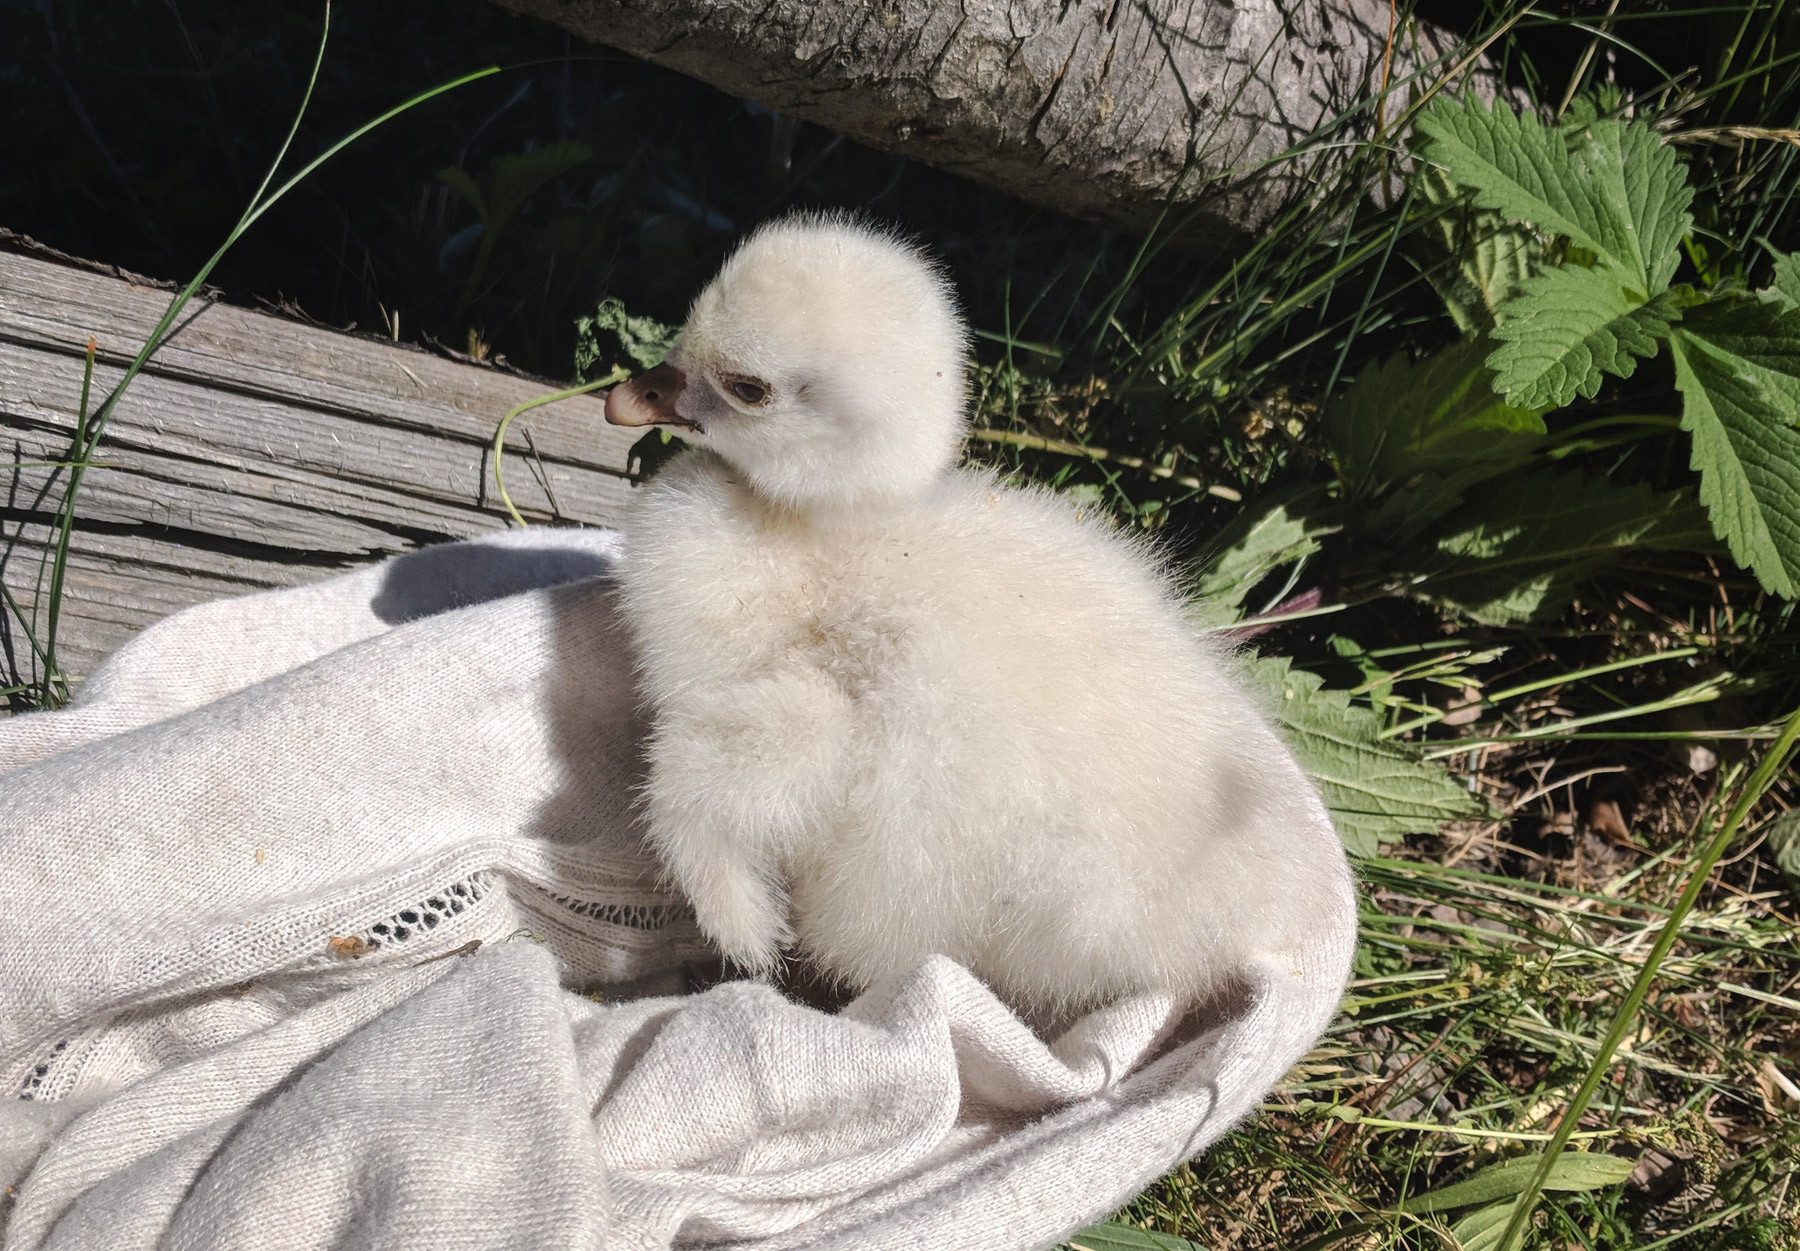 Fluffy grey gosling